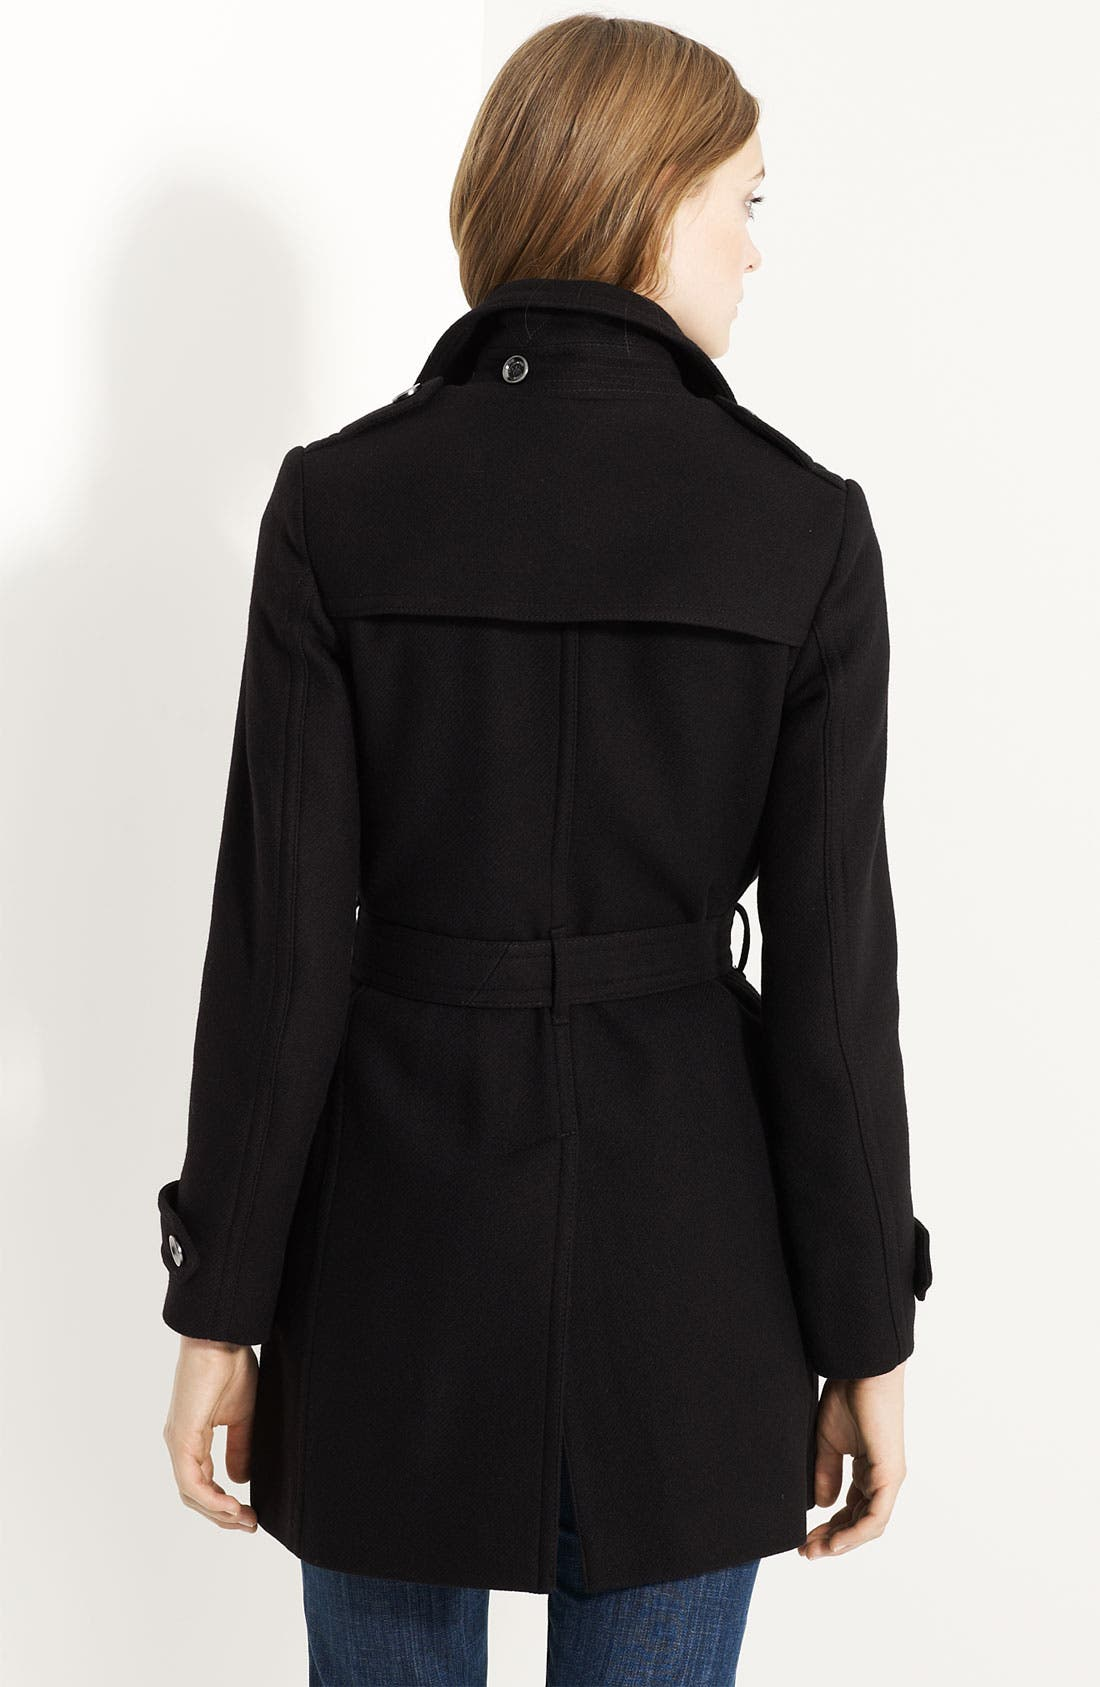 'Balmoral' Wool Blend Trench Coat,                             Alternate thumbnail 2, color,                             001